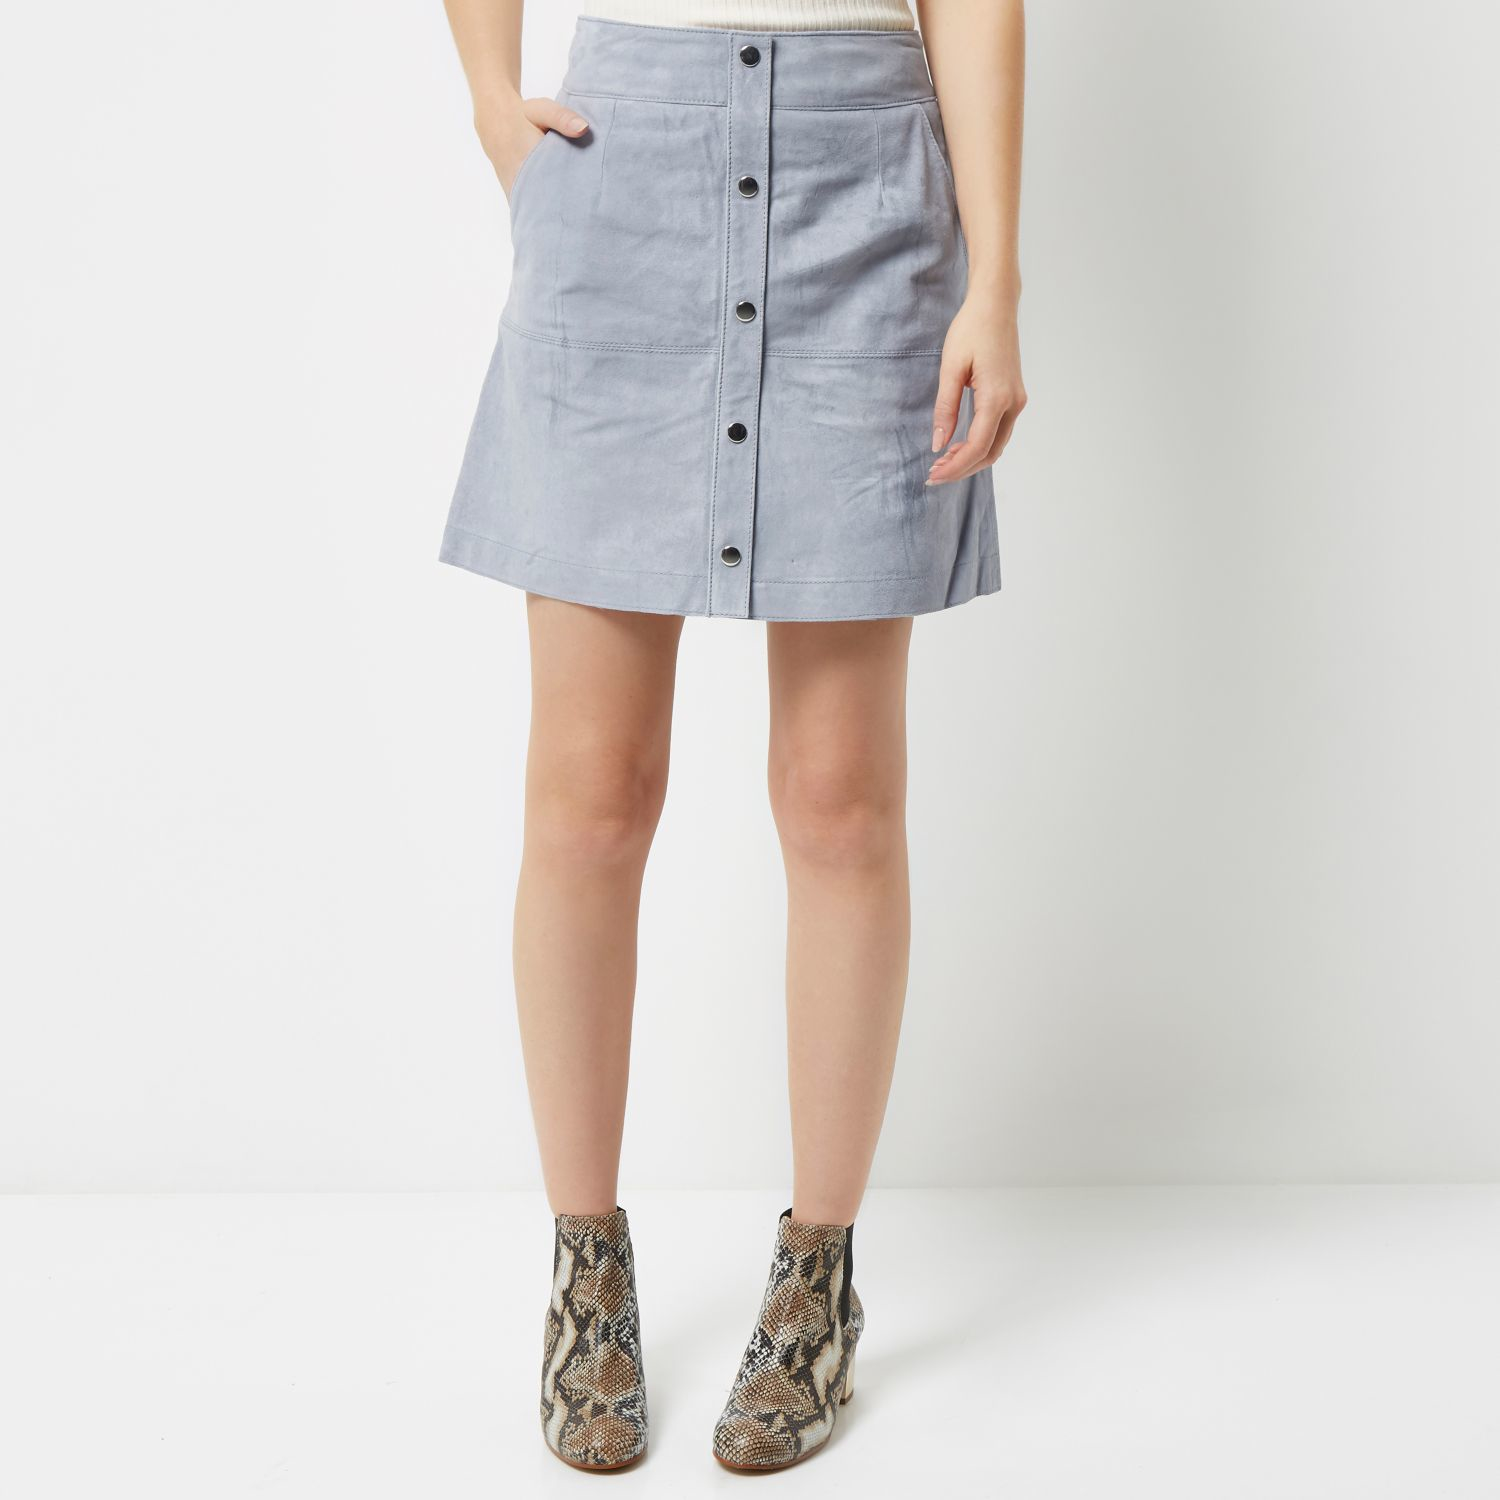 River island Light Blue Suede Button-up A-line Skirt in Blue | Lyst